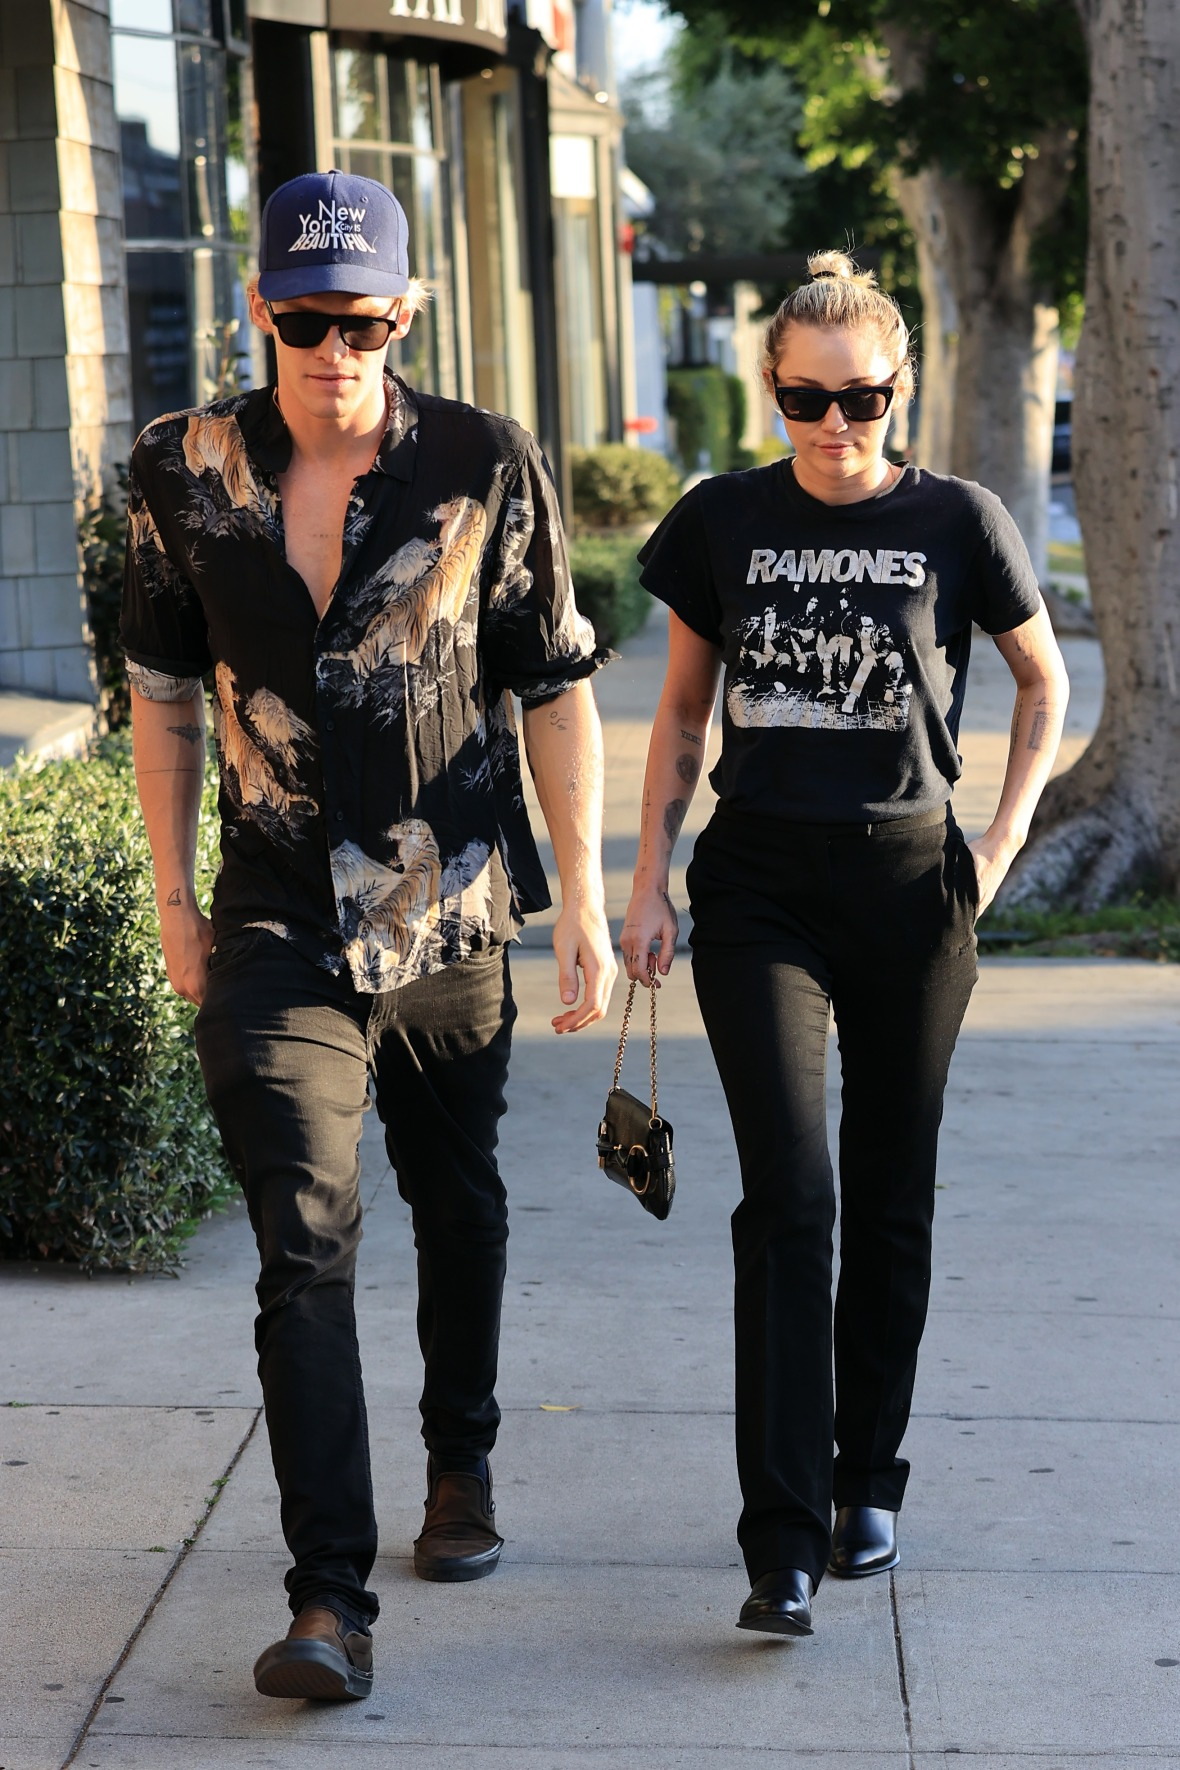 Miley Cyrus Walking With Cody Simpson in West Hollywood